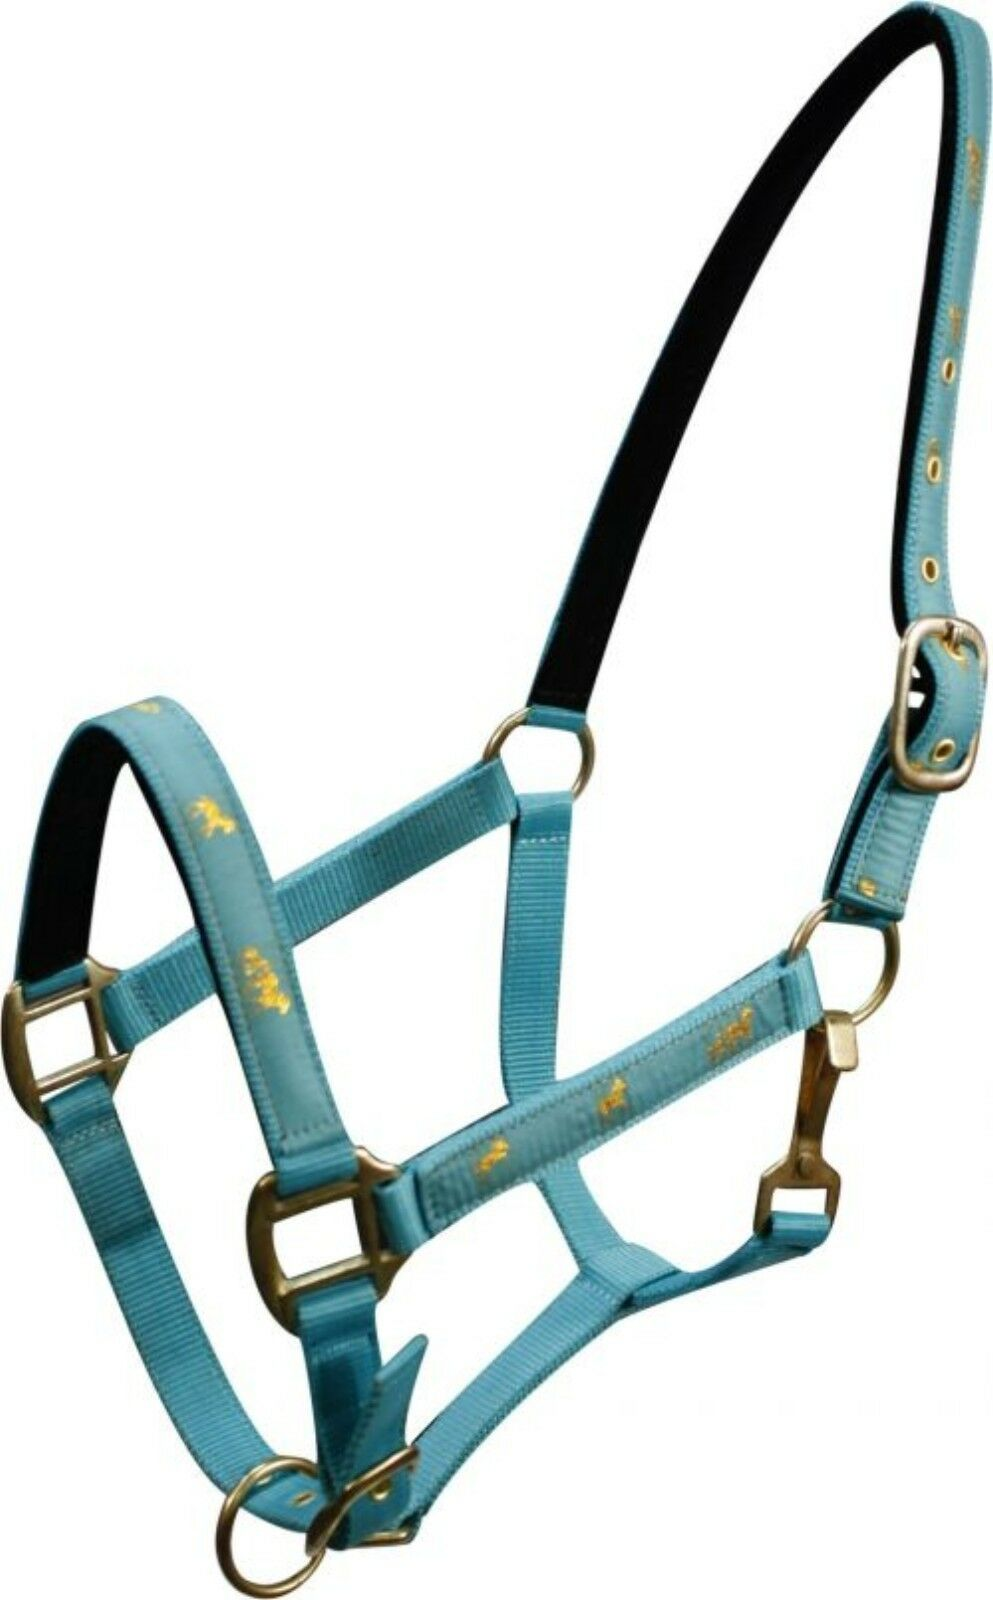 Lime Green Horse Size Nylon Halter With Running Horse Overlay New Horse Tack Halters